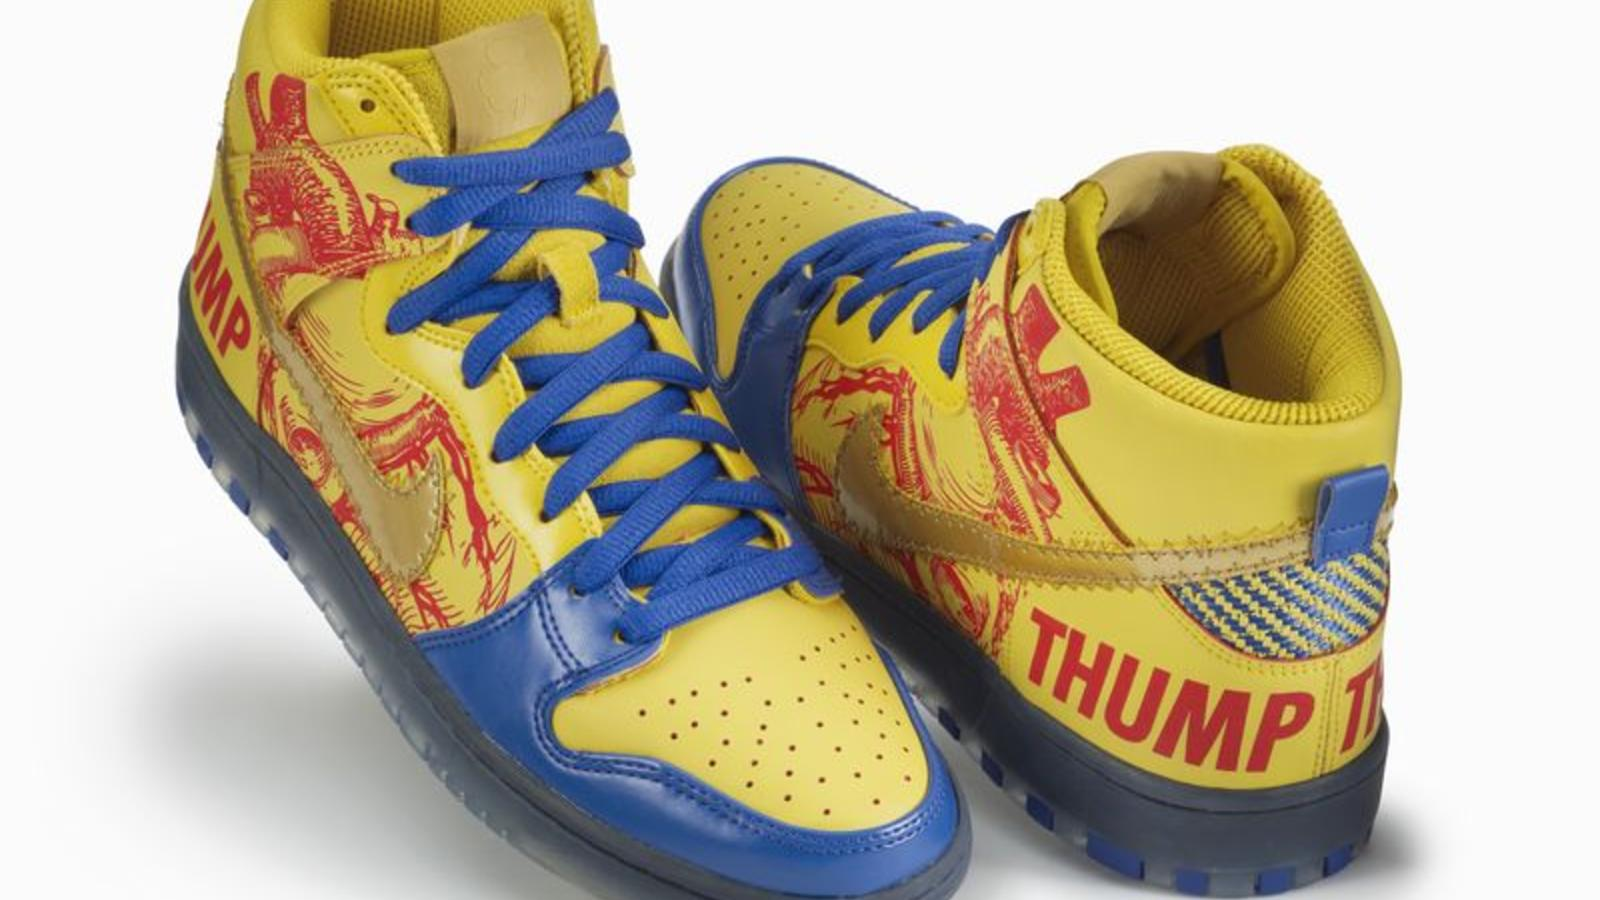 Finnigan Mooney, 2012 Nike Dunk High SB: Heart Thump graphic on right lateral foxing, surgical stitch swoosh on left shoe, black & yellow carbon fiber on left heel bellows, left shoe tongue binding